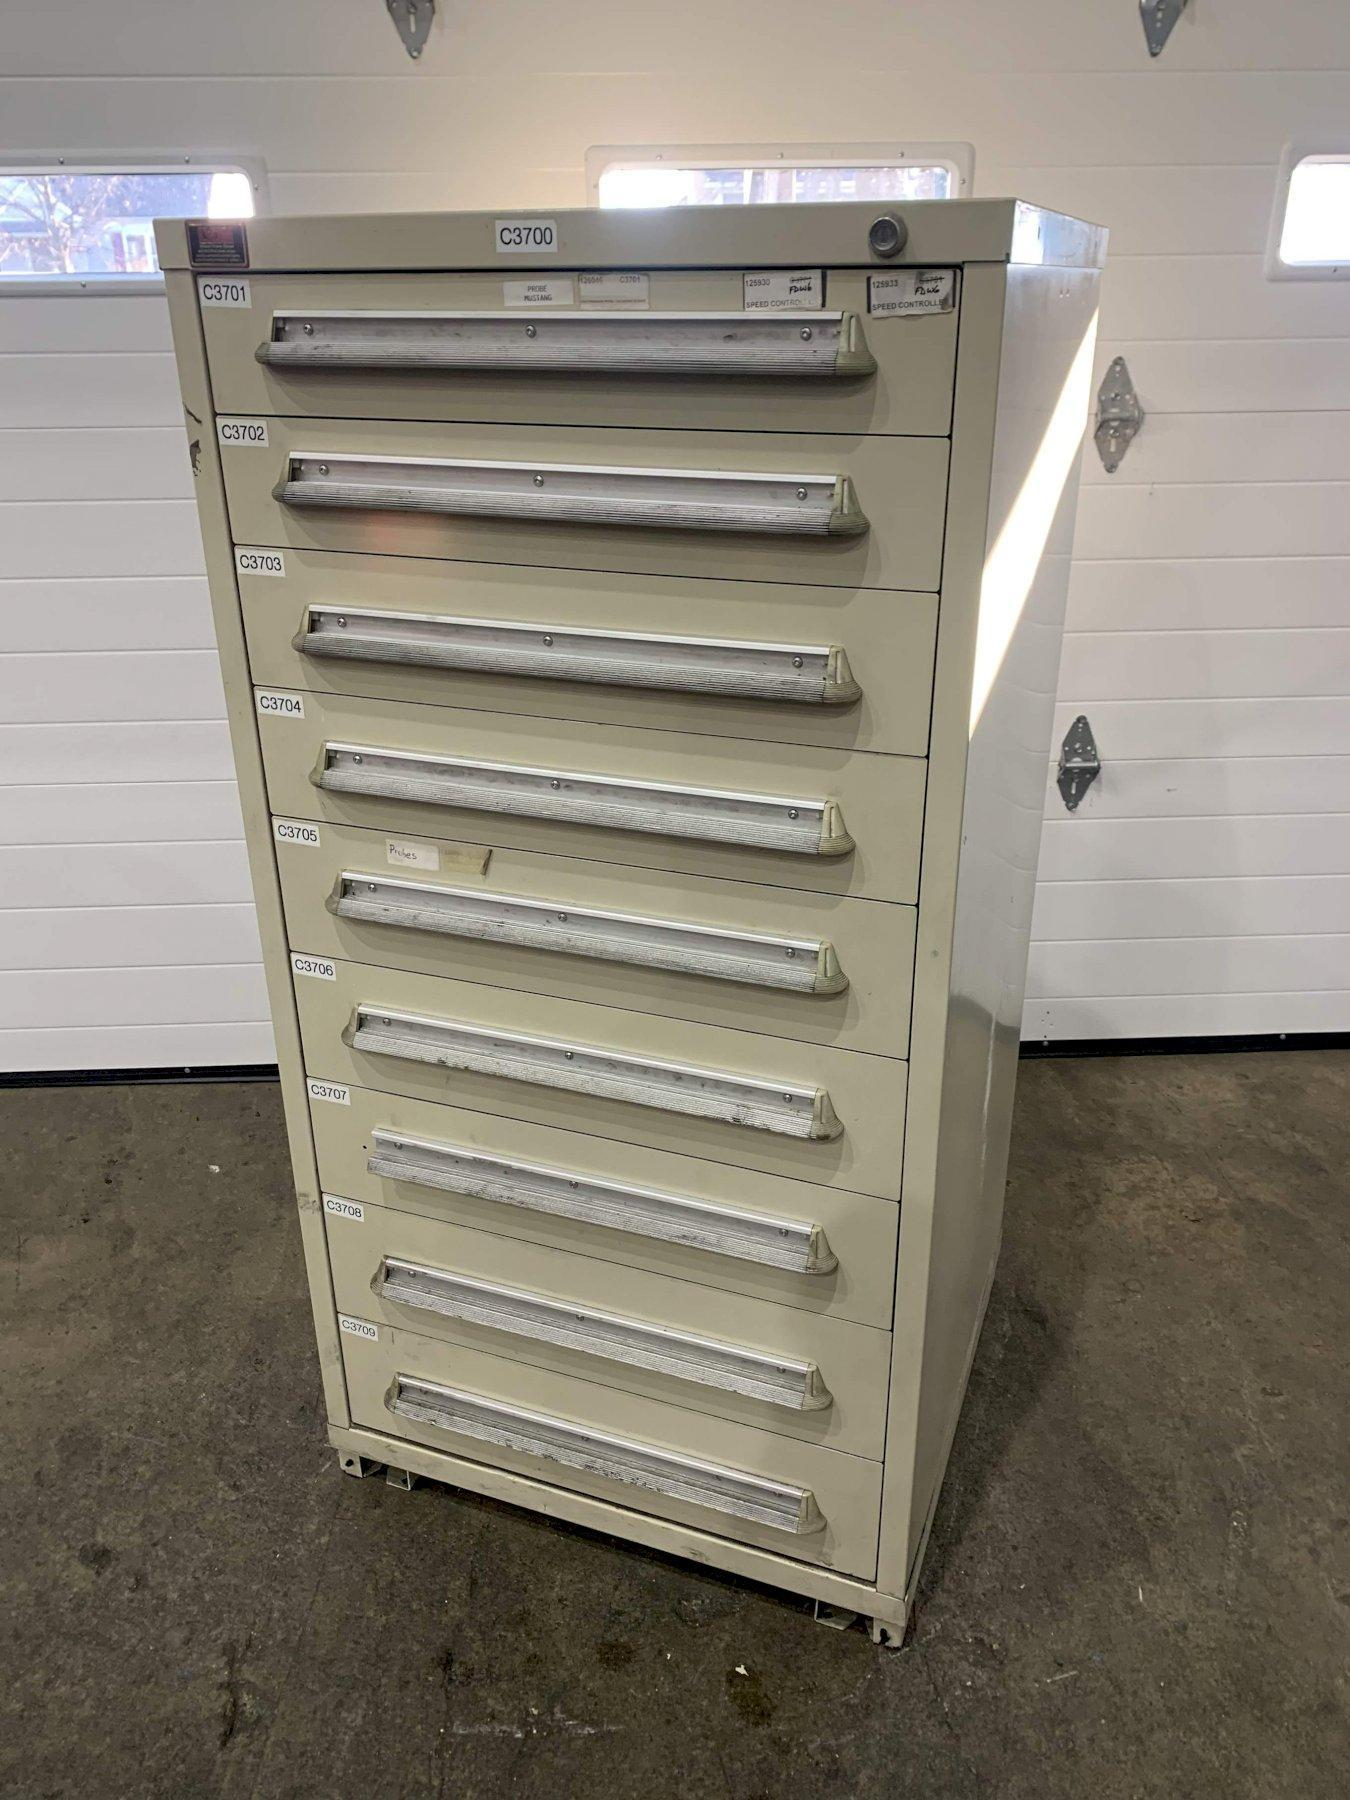 9 DRAWER LYON CABINET: STOCK #73706